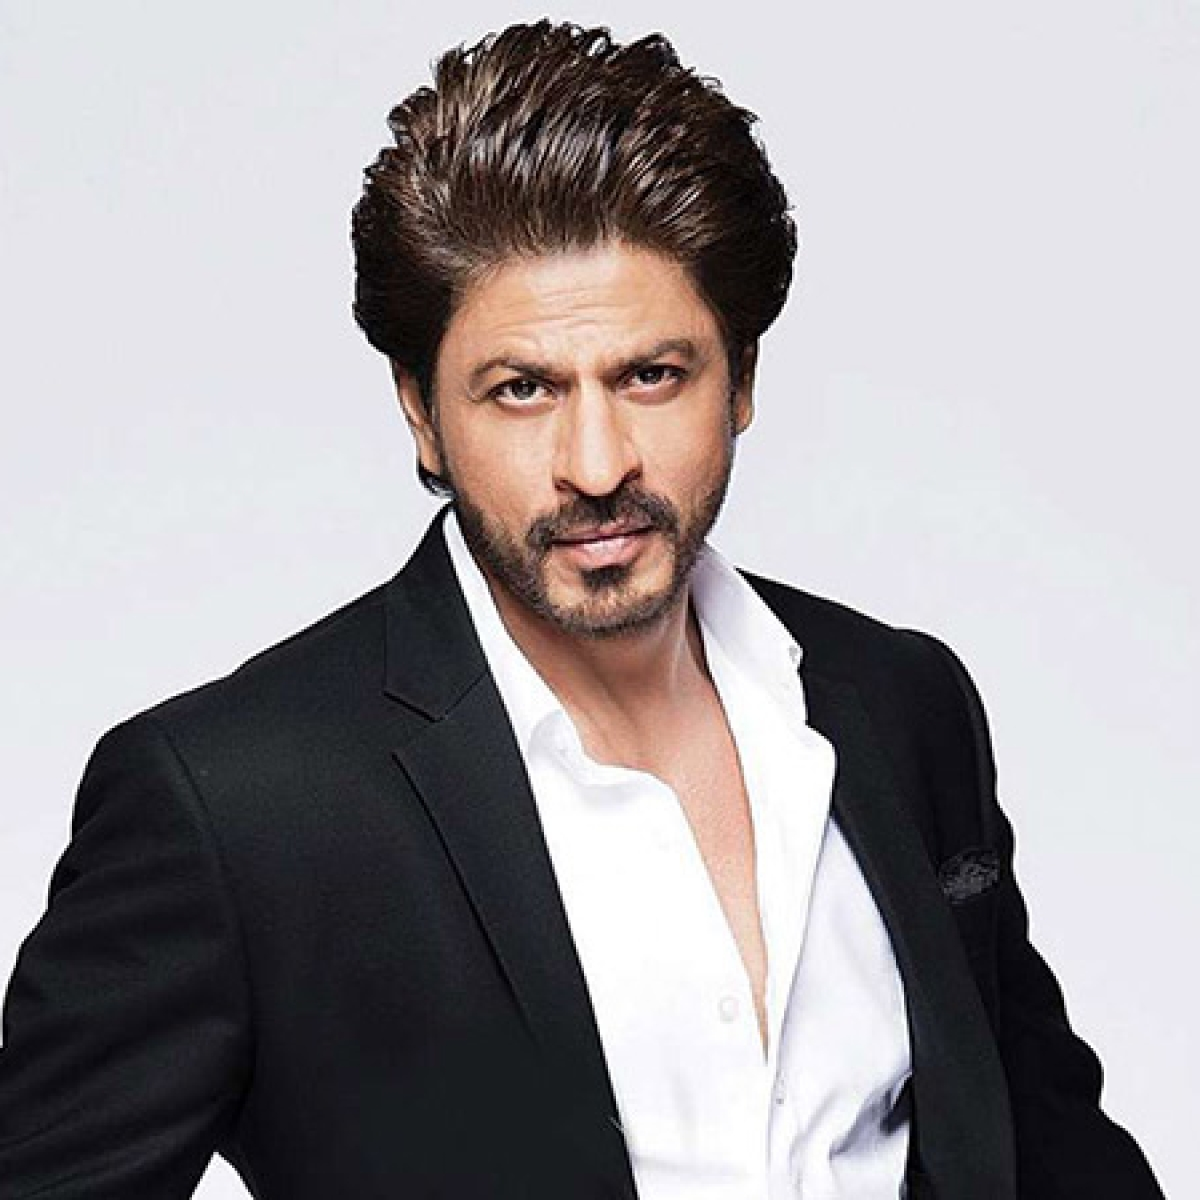 Shah Rukh Khan to star in Yash Raj Films' action drama directed by Siddharth Anand?